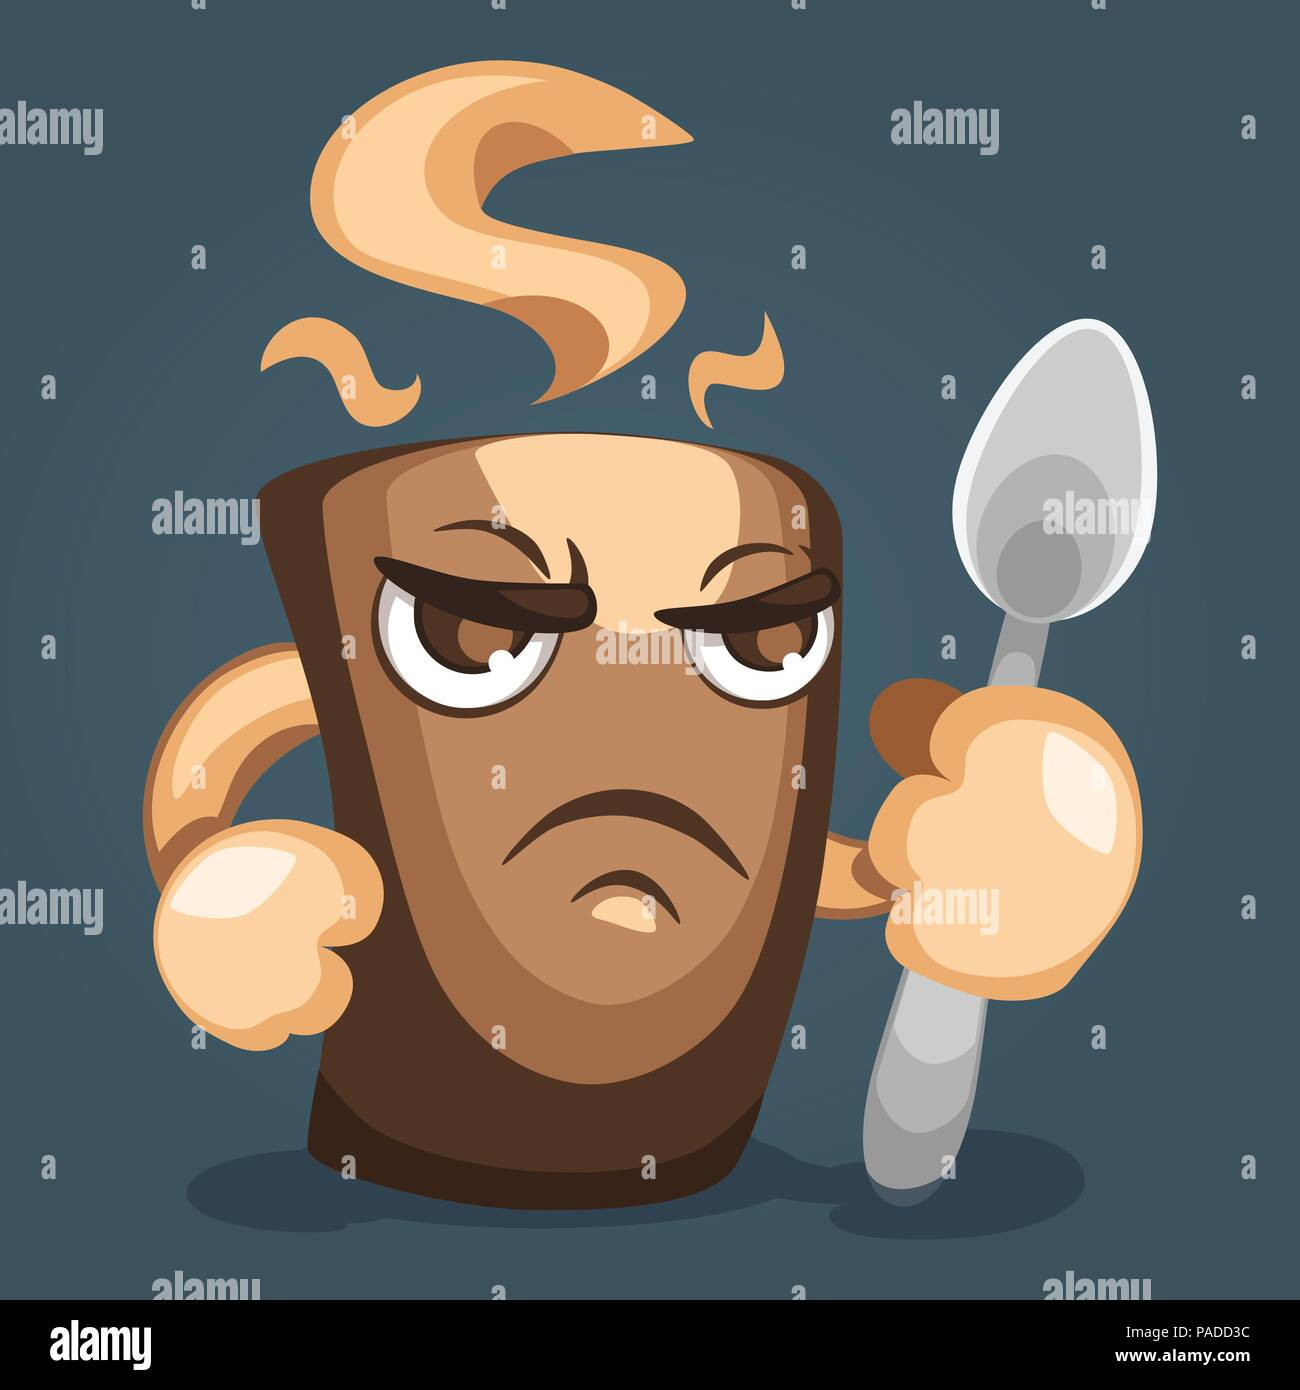 Illustration of a fearsome coffee mug with  fist and  spoon in hand, side view. Cartoon character design - Stock Vector